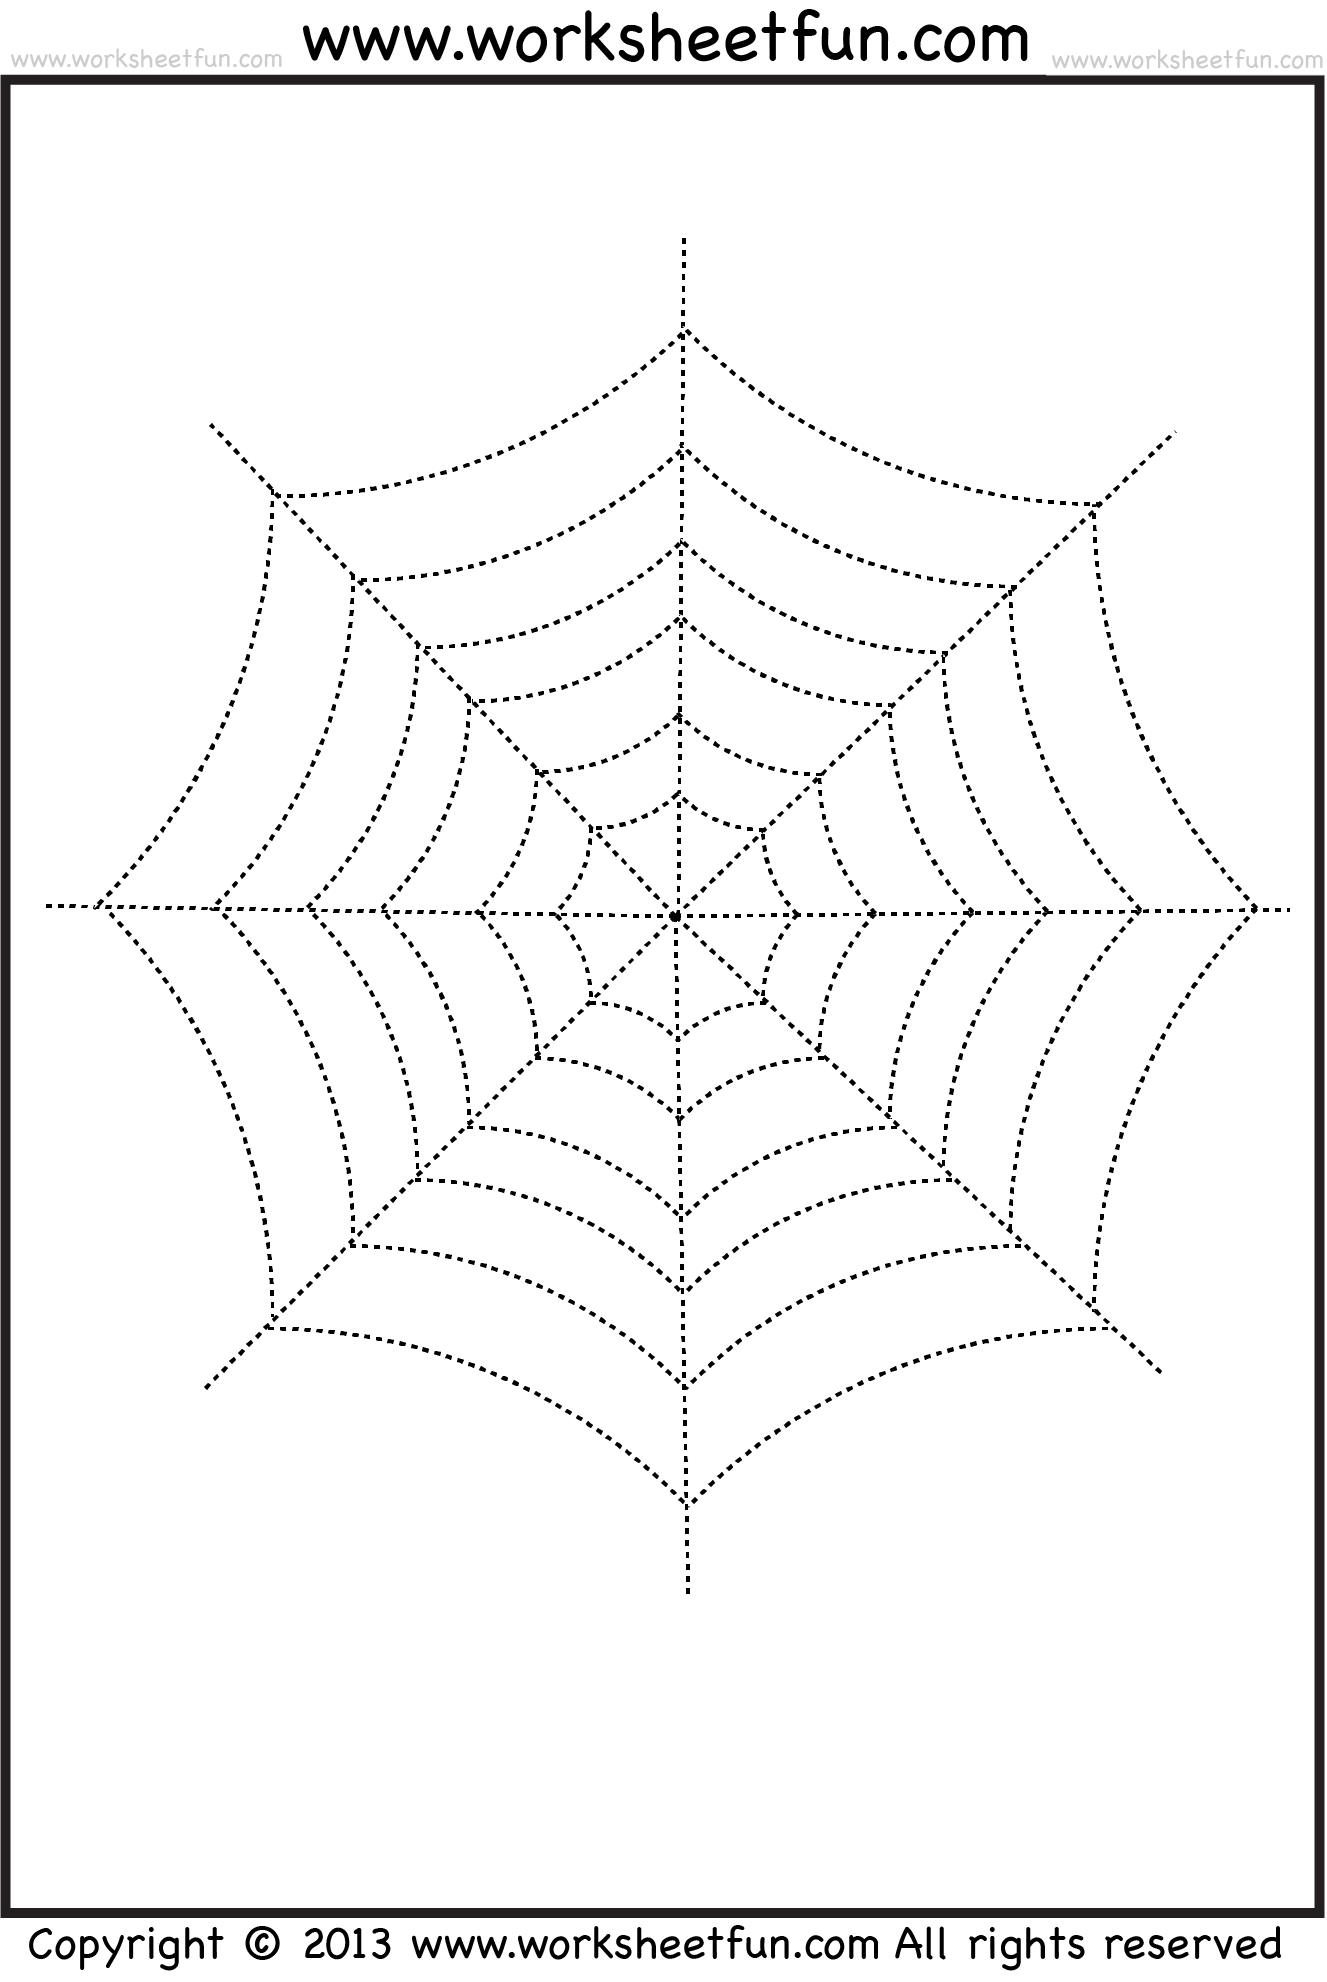 worksheet Spider Worksheets halloween tracing and coloring sheets preschool pinterest spider web 2 worksheets free